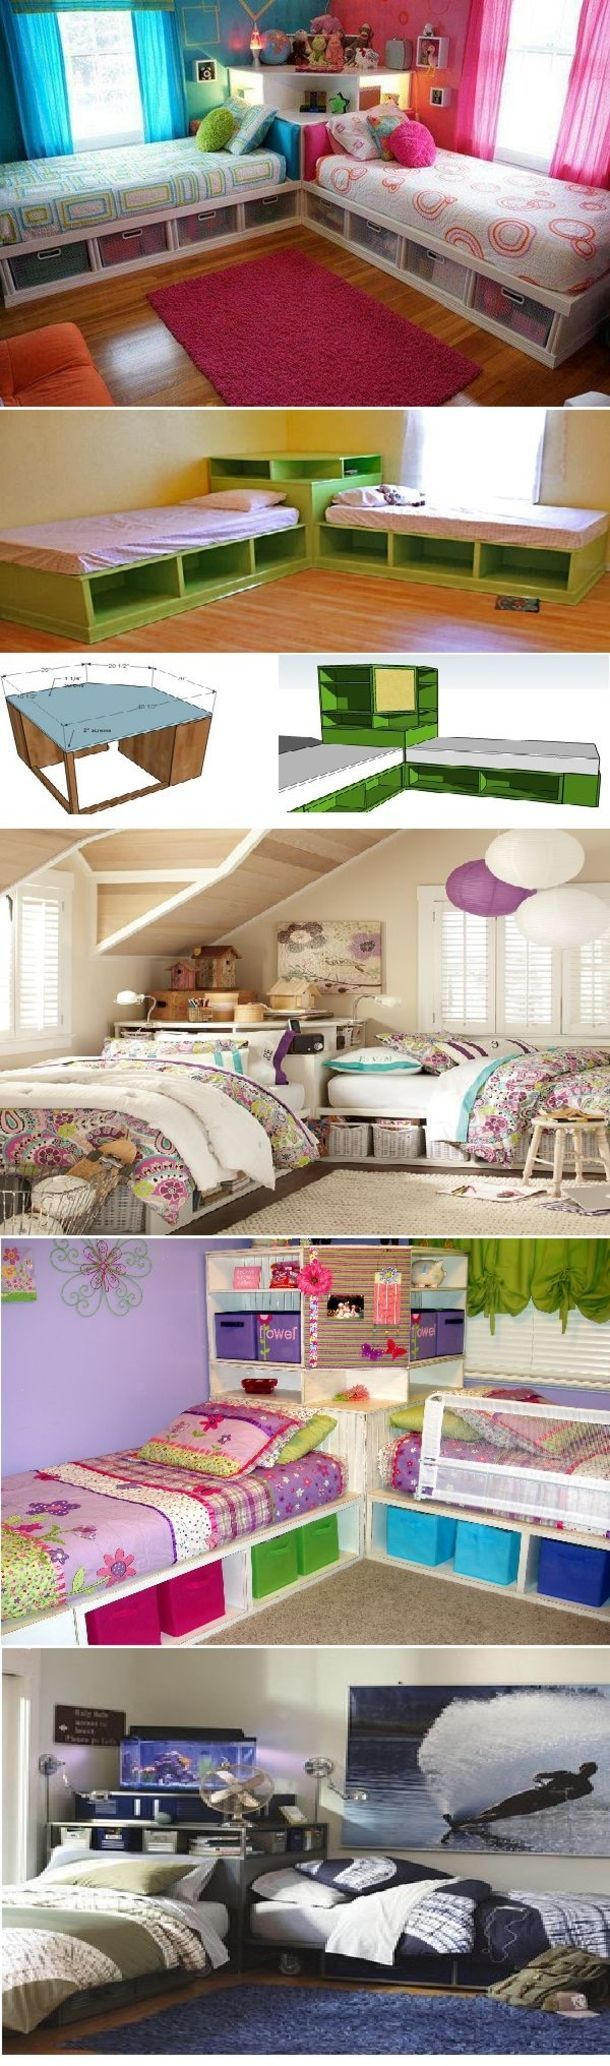 Cool Best Shared Bedroom Ideas For Boys And Girls By Http://www. Part 43